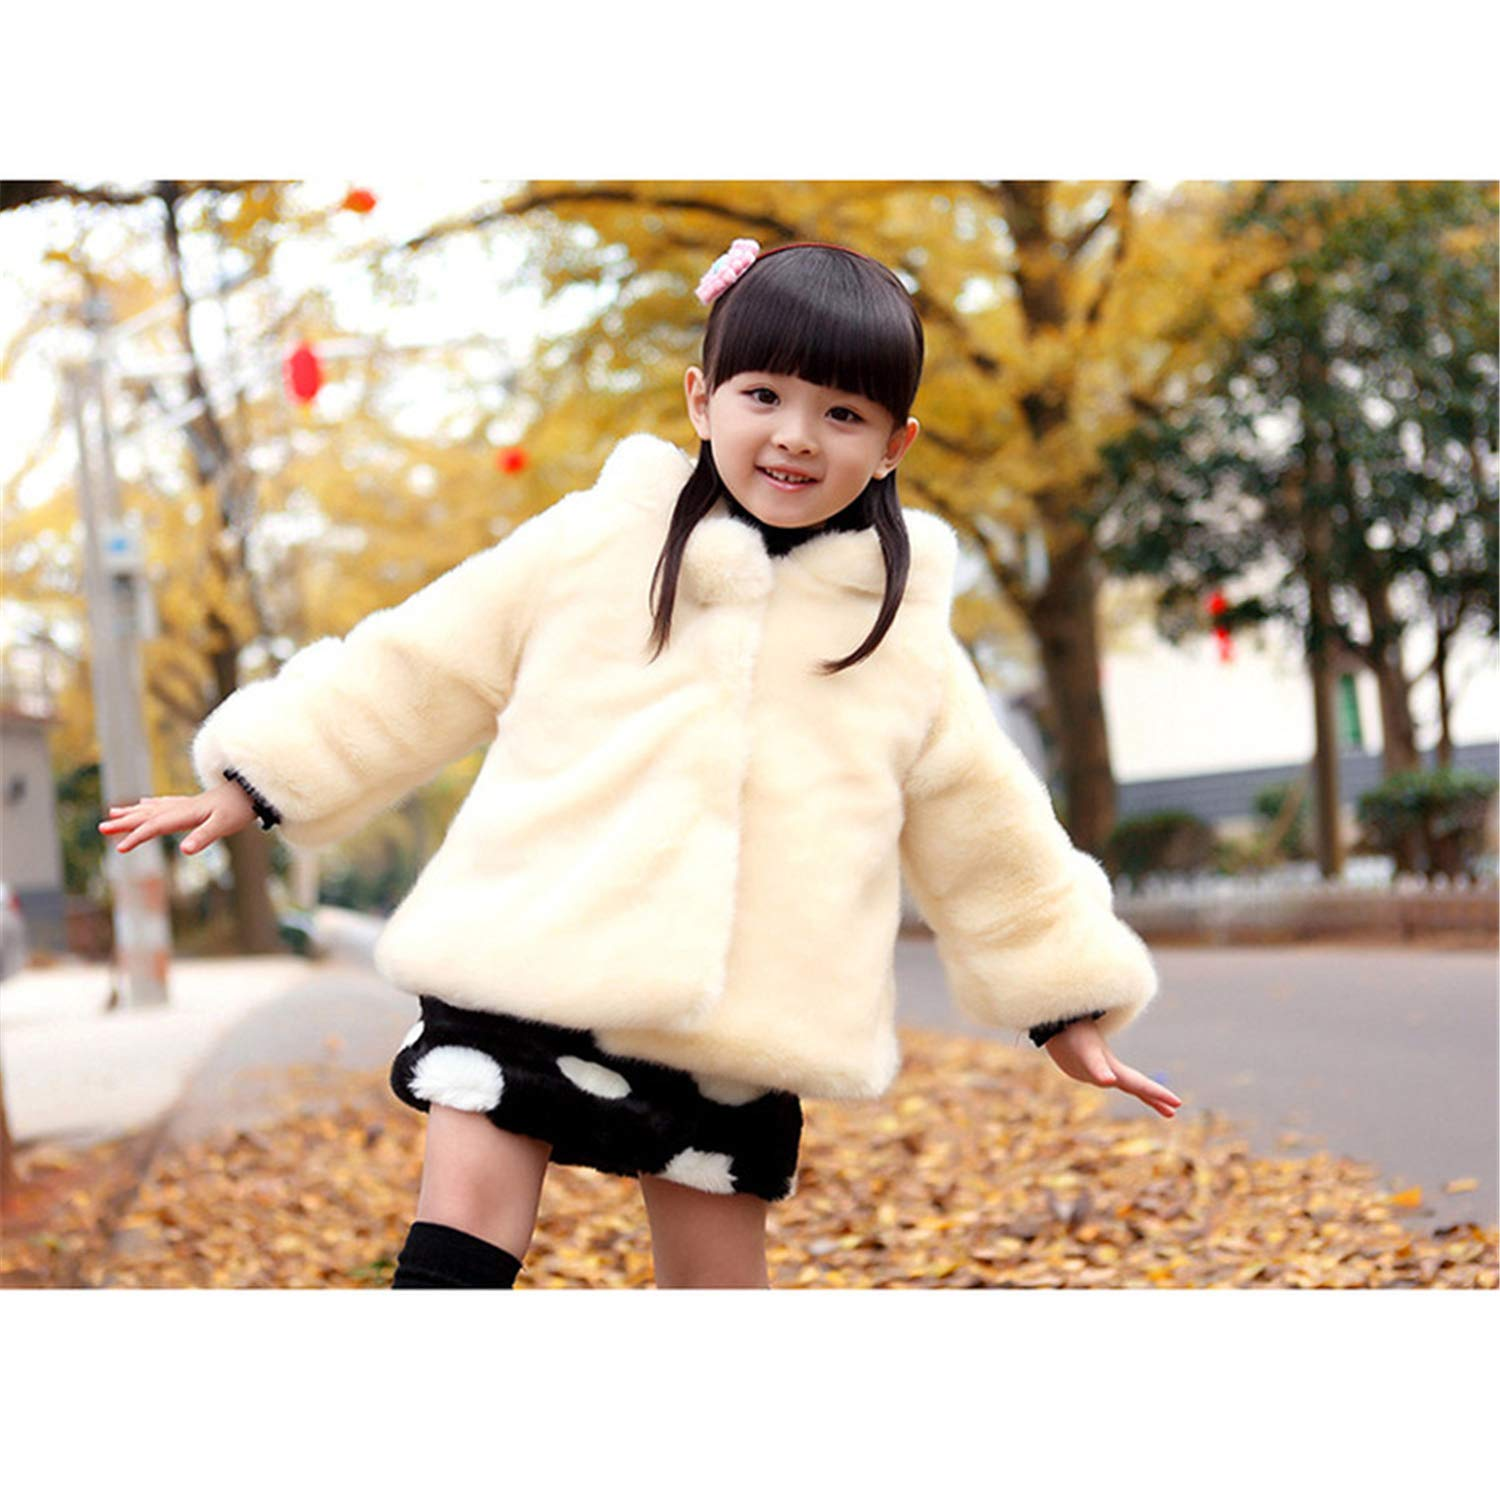 Luckcome Baby Infant Girls Fur Warm Cartoon Jacket Coat Cloak Overcoat Hoodies Cute Outdoor Suit